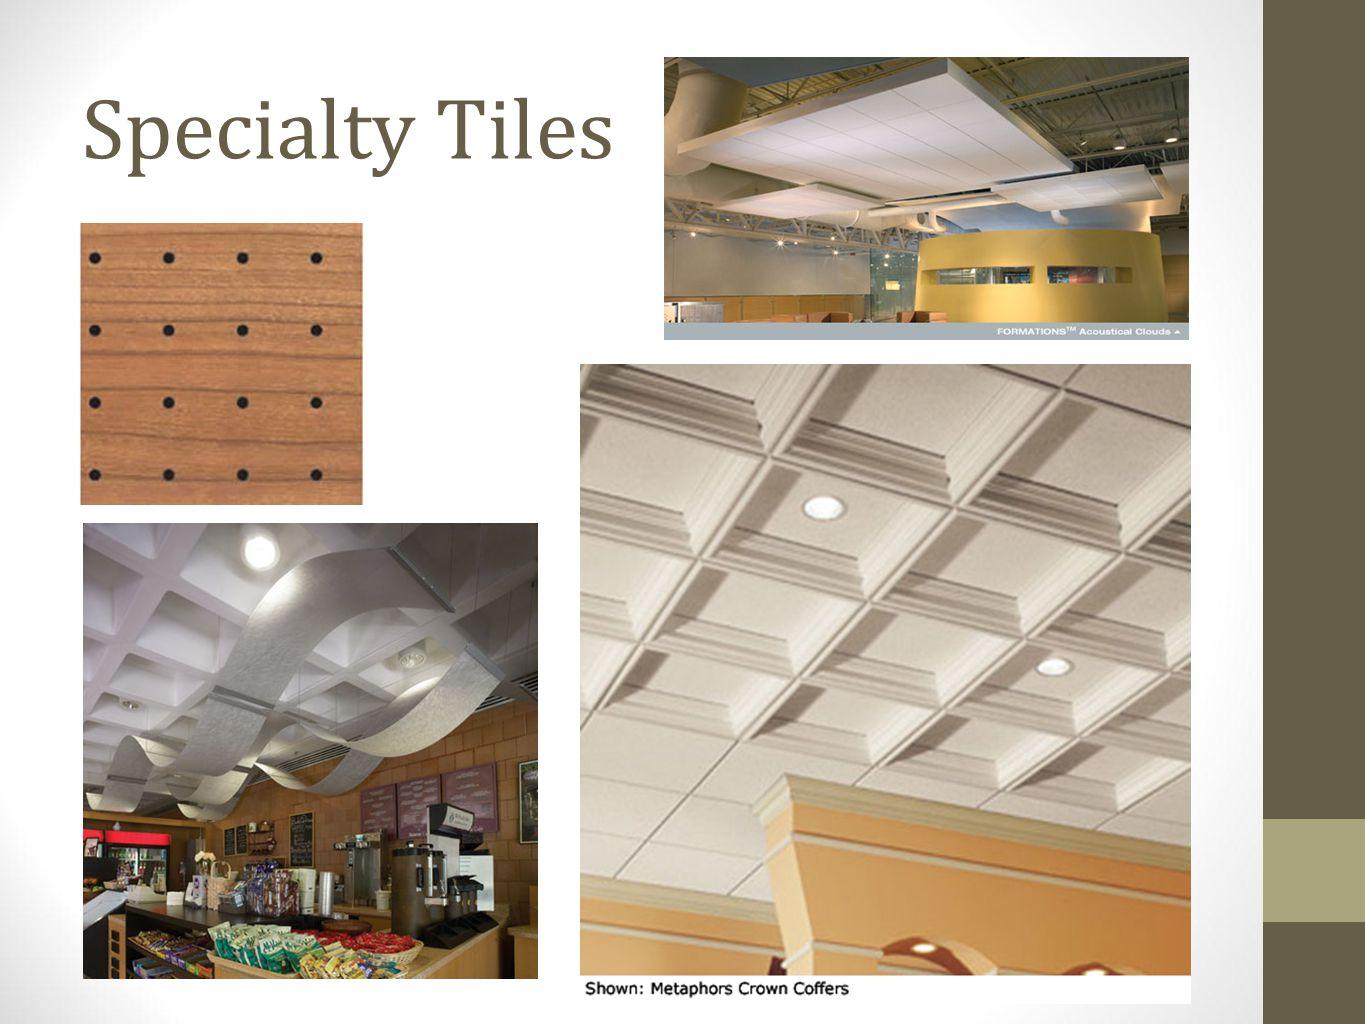 Specialty Tiles